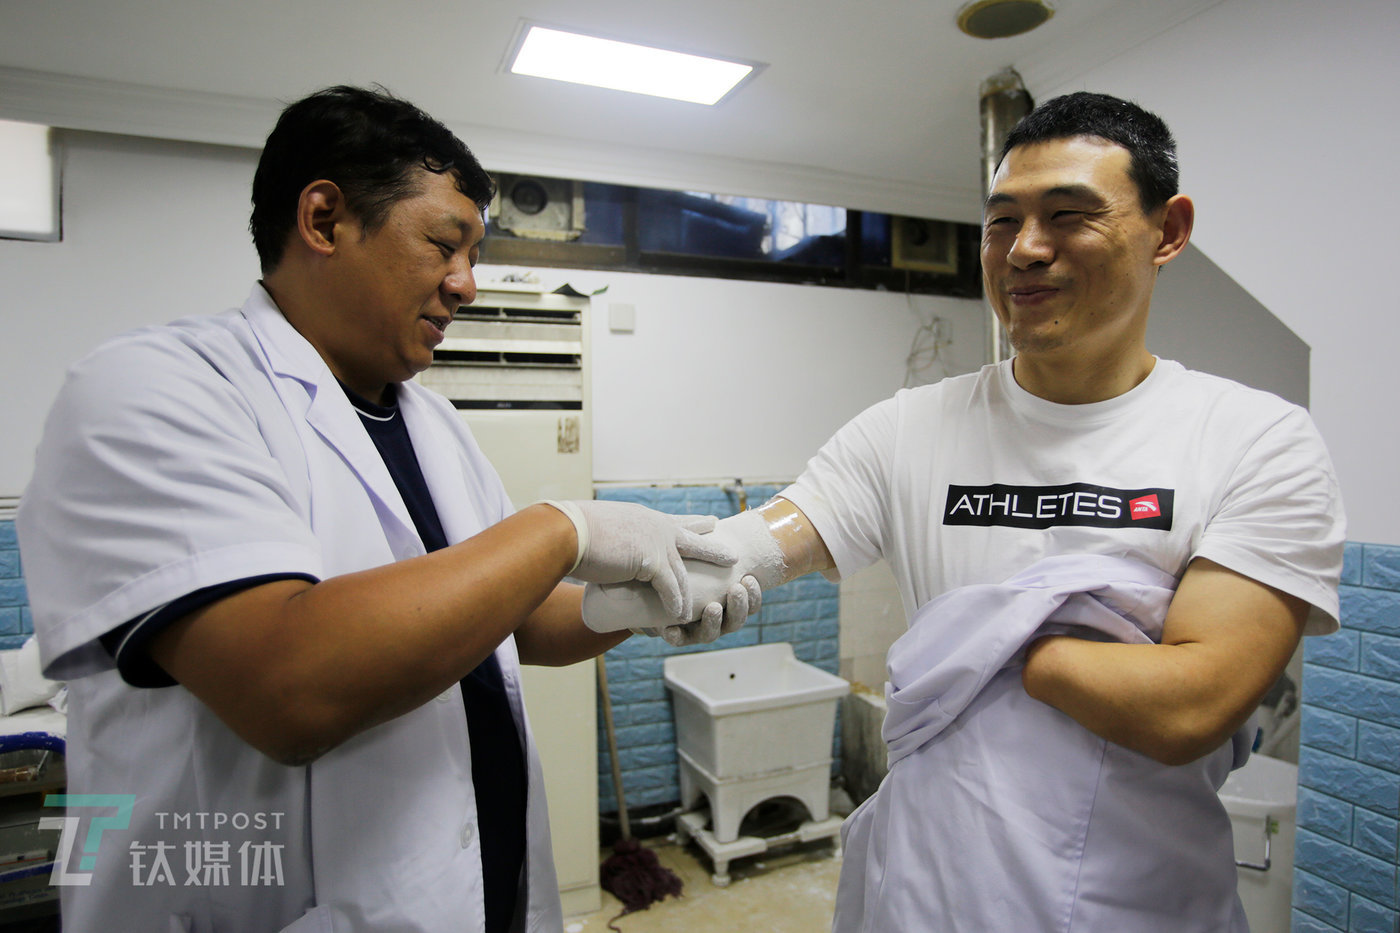 Ni Mincheng, a newly recruited prosthetic hand tester, aged 39, originates from the prefecture-level city of Jinhua in China's southeastern Zhejiang province. At the age of just 10, he lost both of his hands in an accident that resulted from explosives set off by villagers, originally intended to kill wild boars. On May 22 this year, in Shanghai, Ni Mincheng had gypsum mold cast to his arm to obtain an accurate limb model in order to prepare the cavity for a new prosthetic hand.